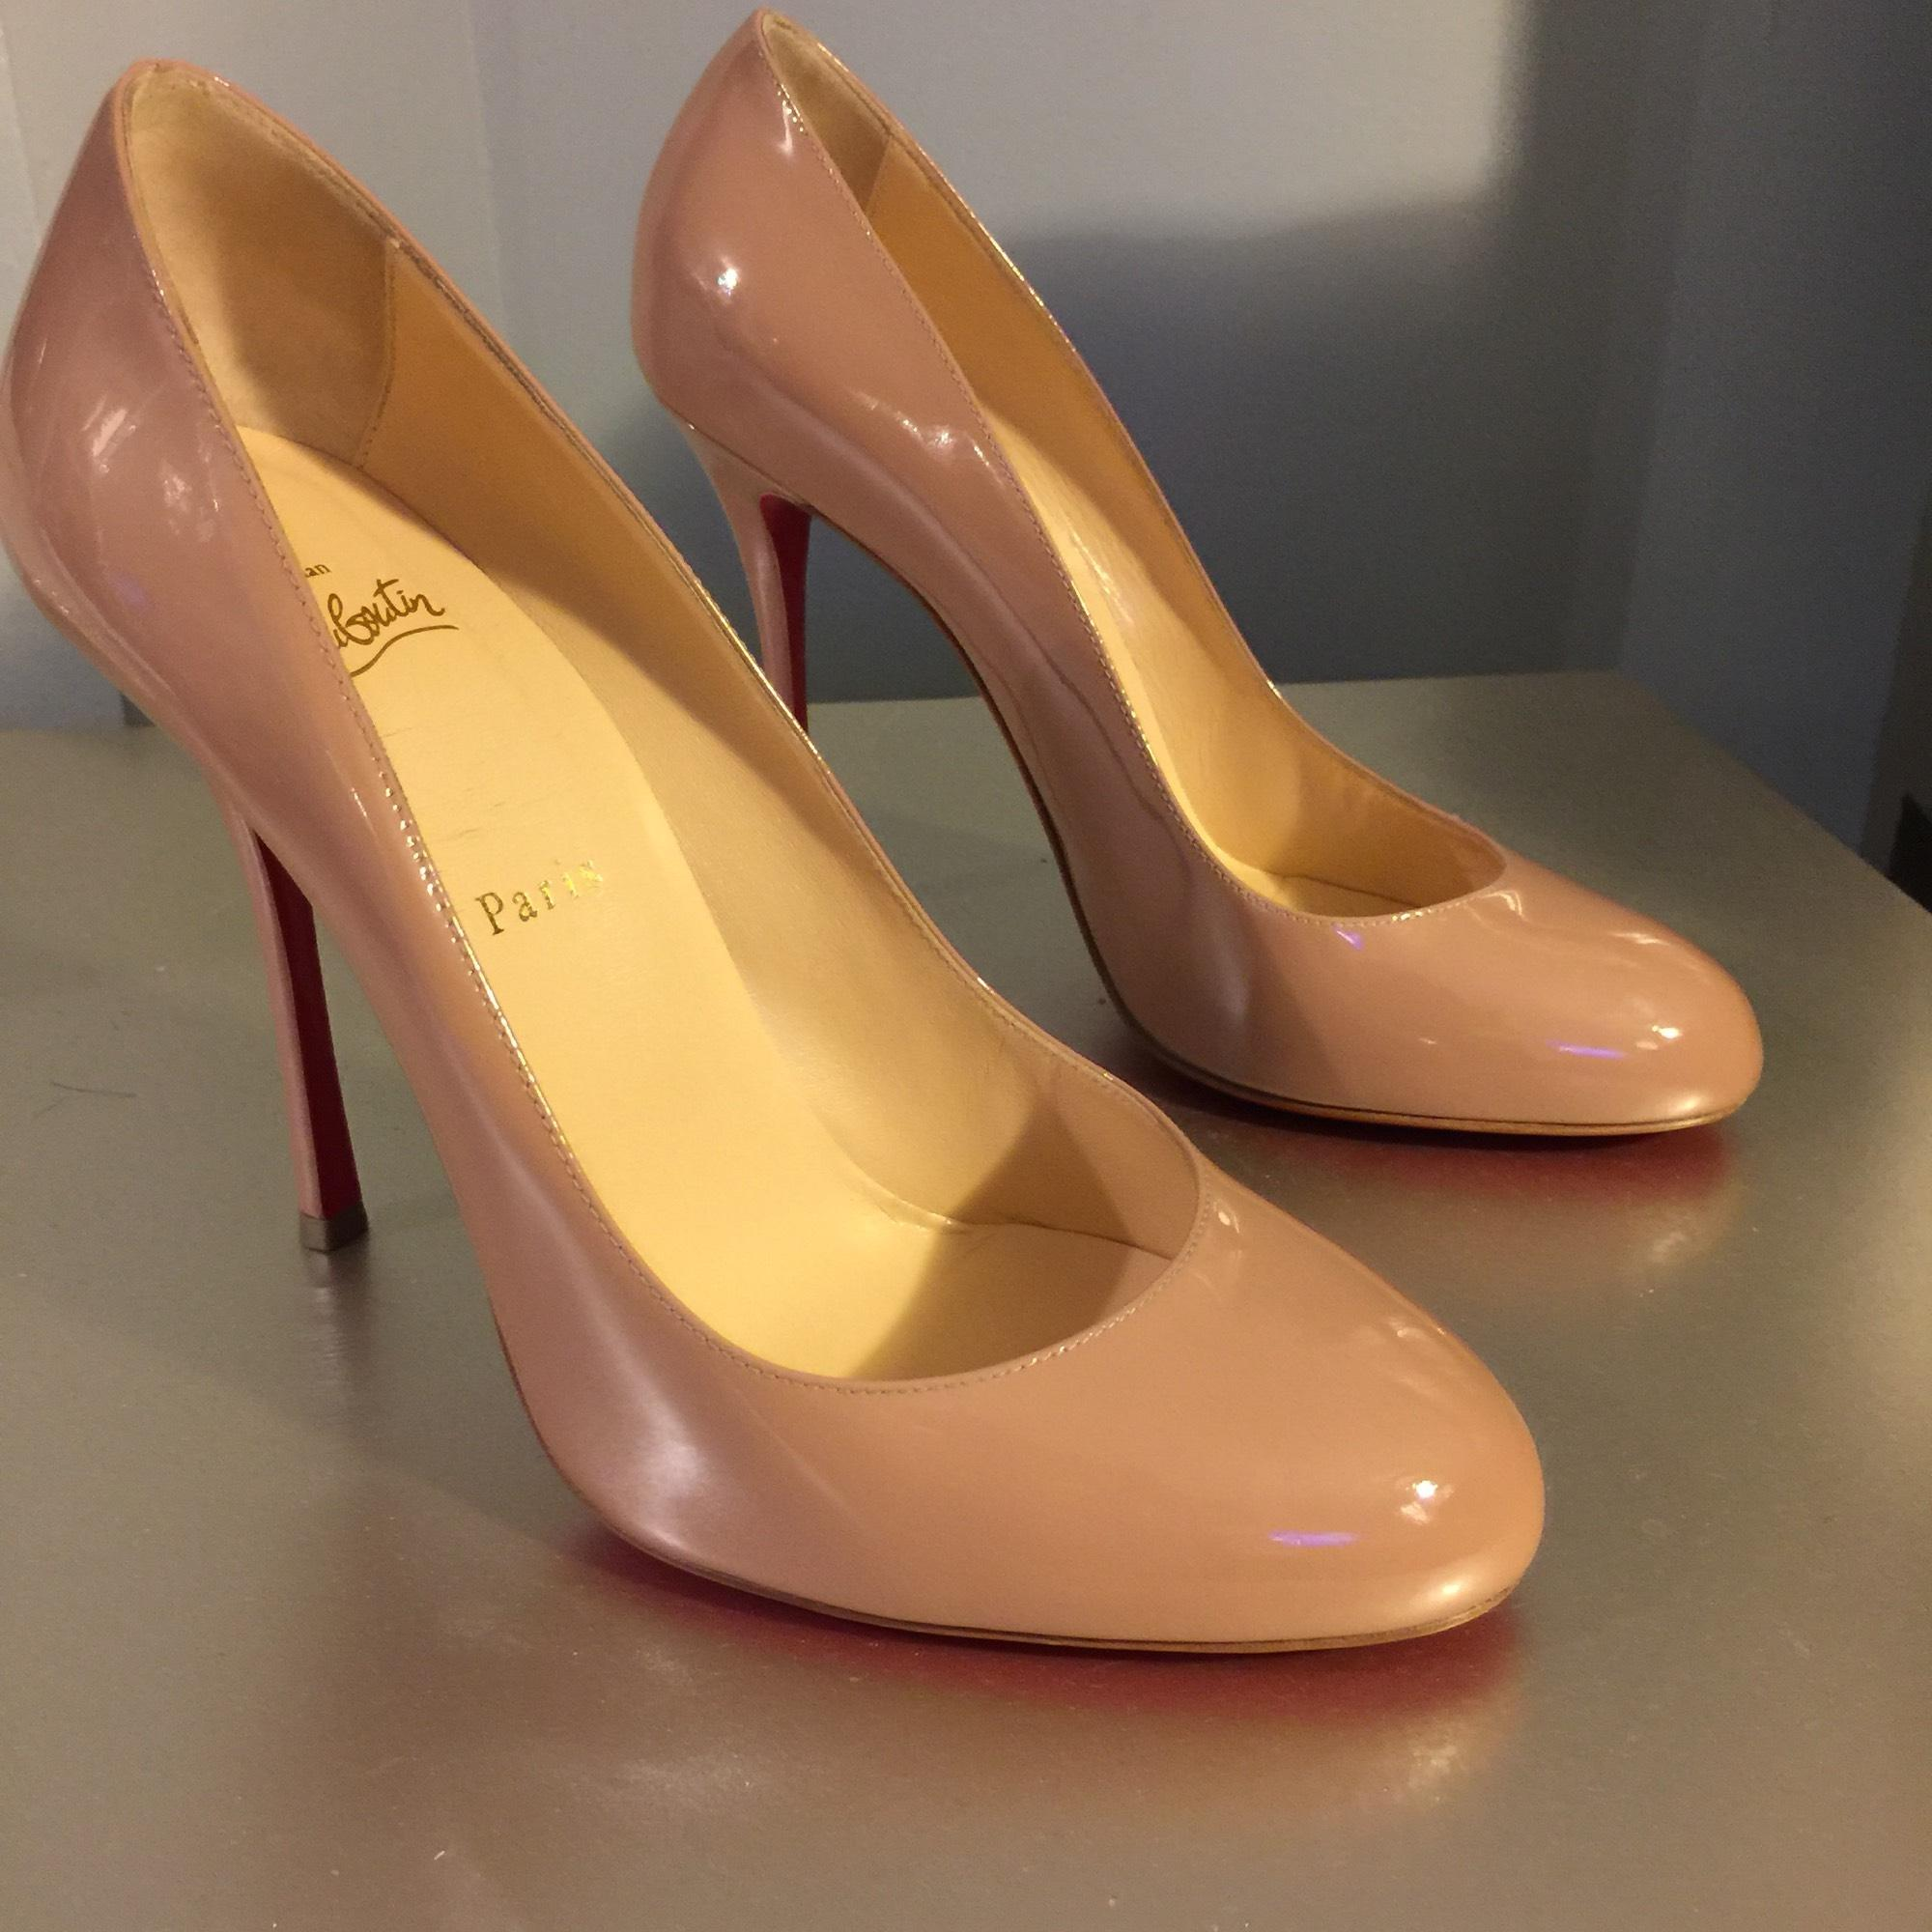 492a6bfcf729 ... Christian Louboutin Nude Fifetish 100 Patent-leather Pumps Size Size  Size EU 40 (Approx ...